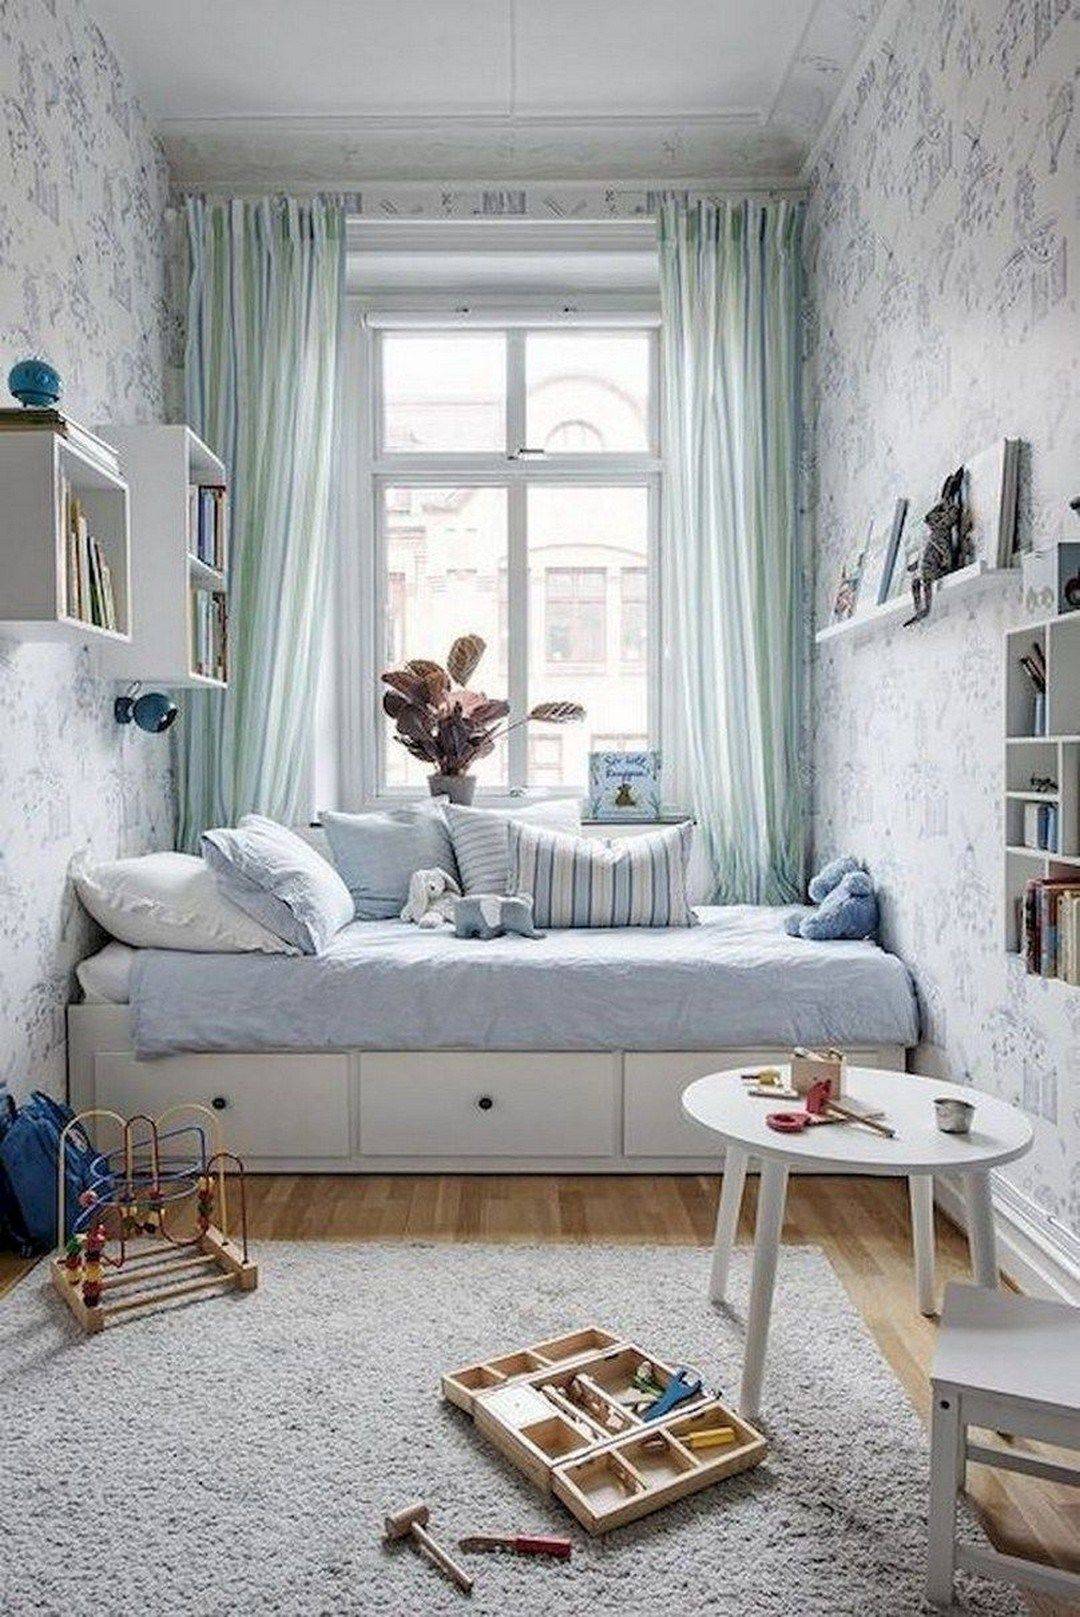 You Must Turn Into Some Little Space Bedroom Suggestions To